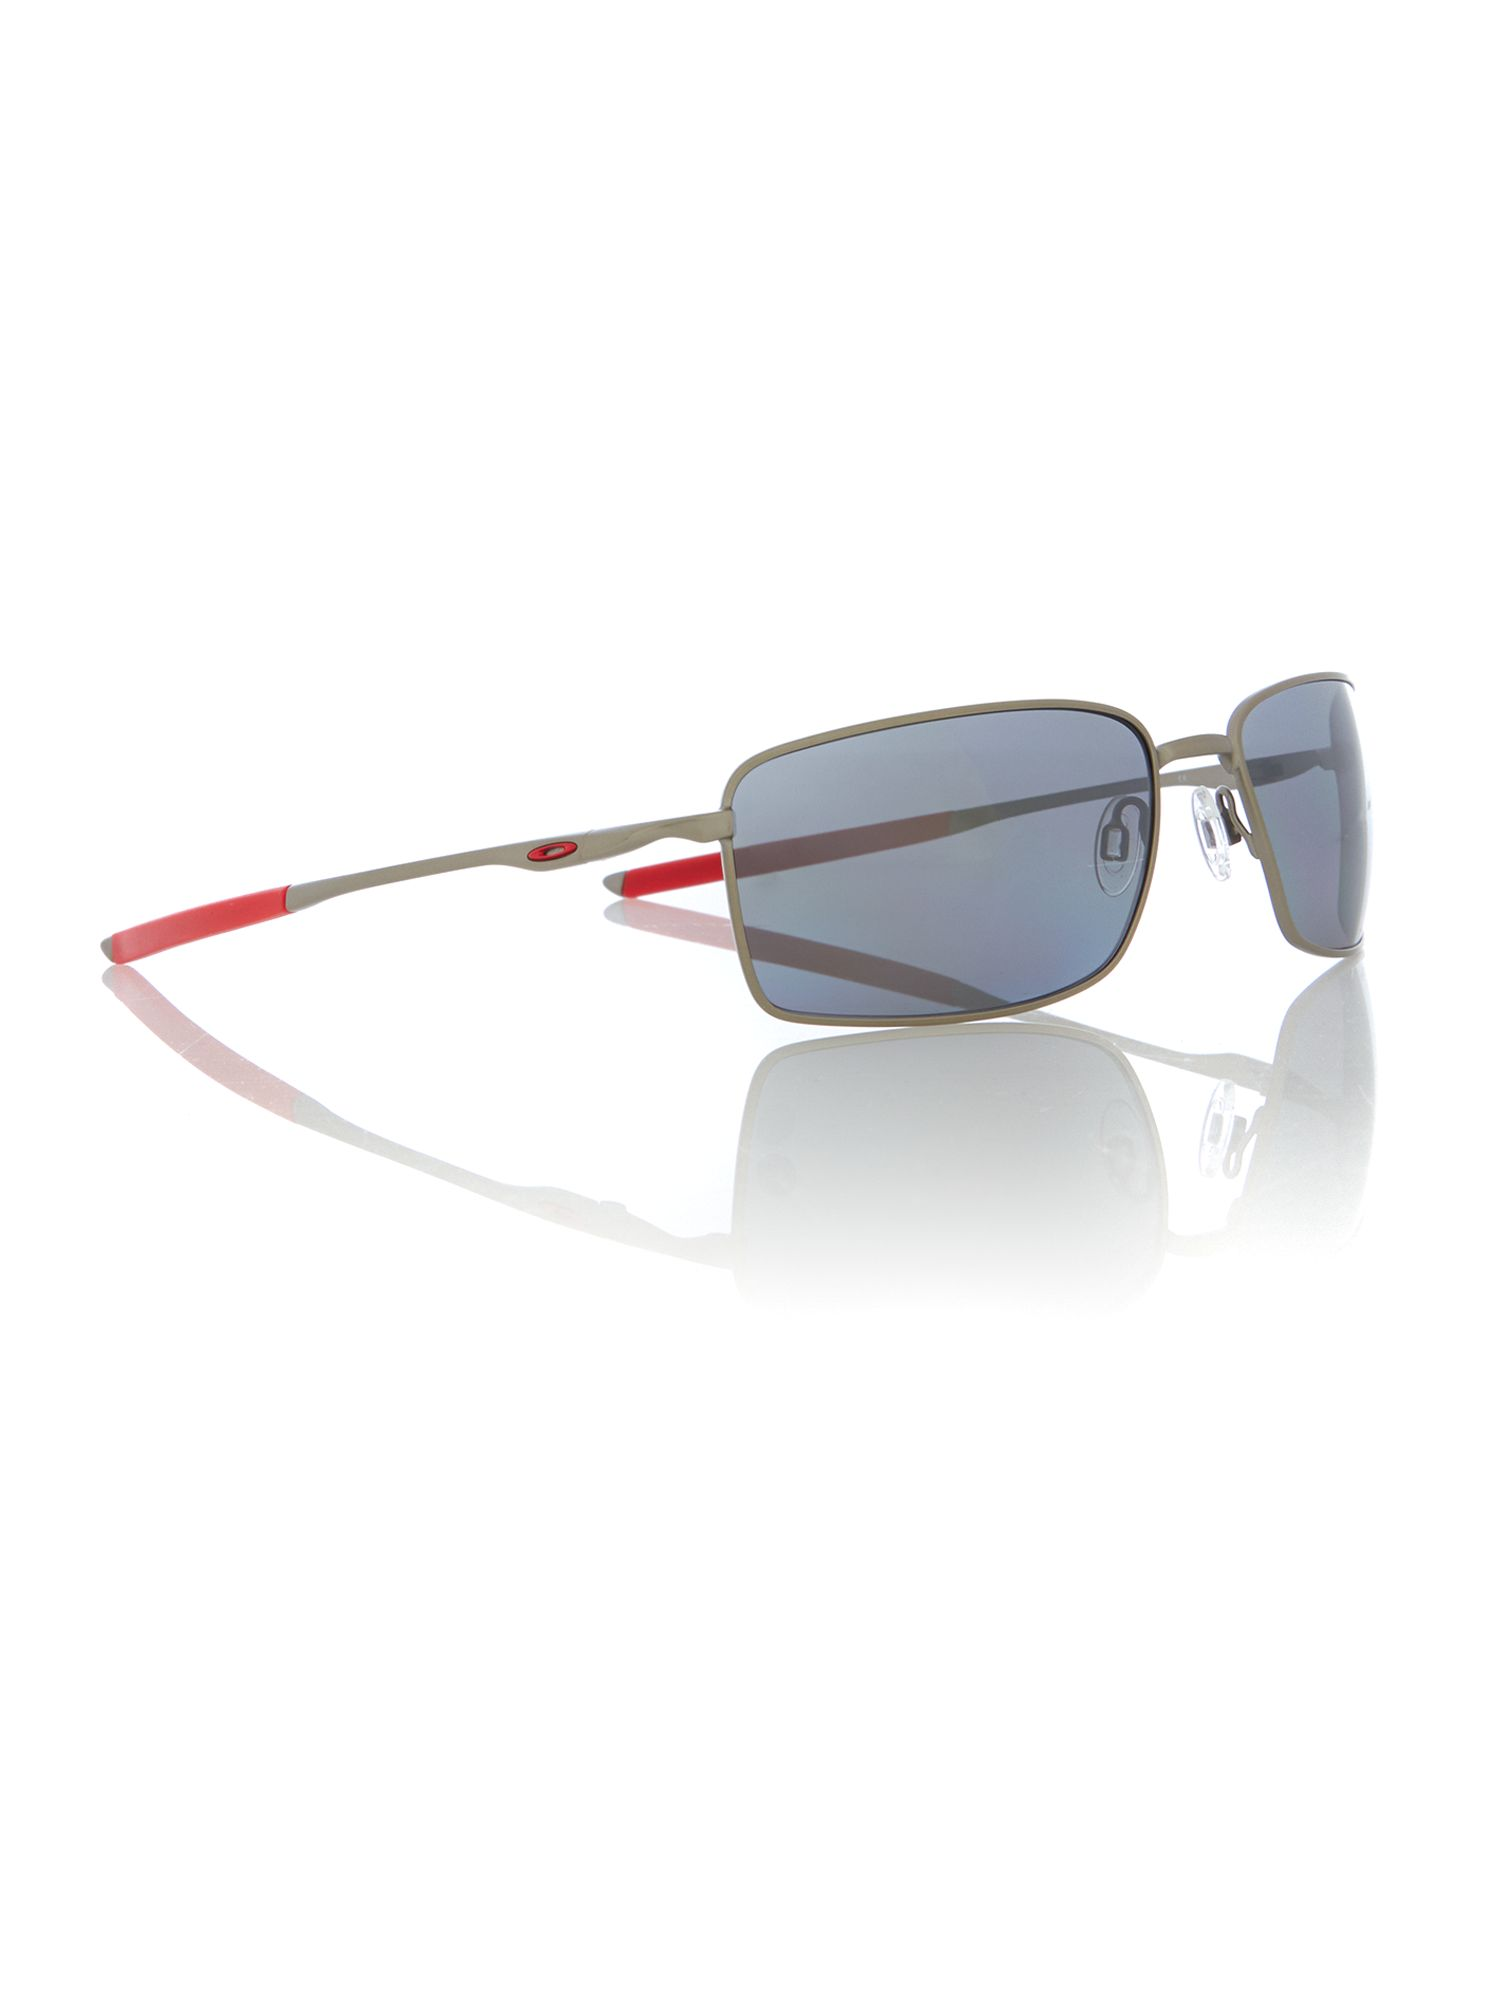 Mens rectangle sunglasses